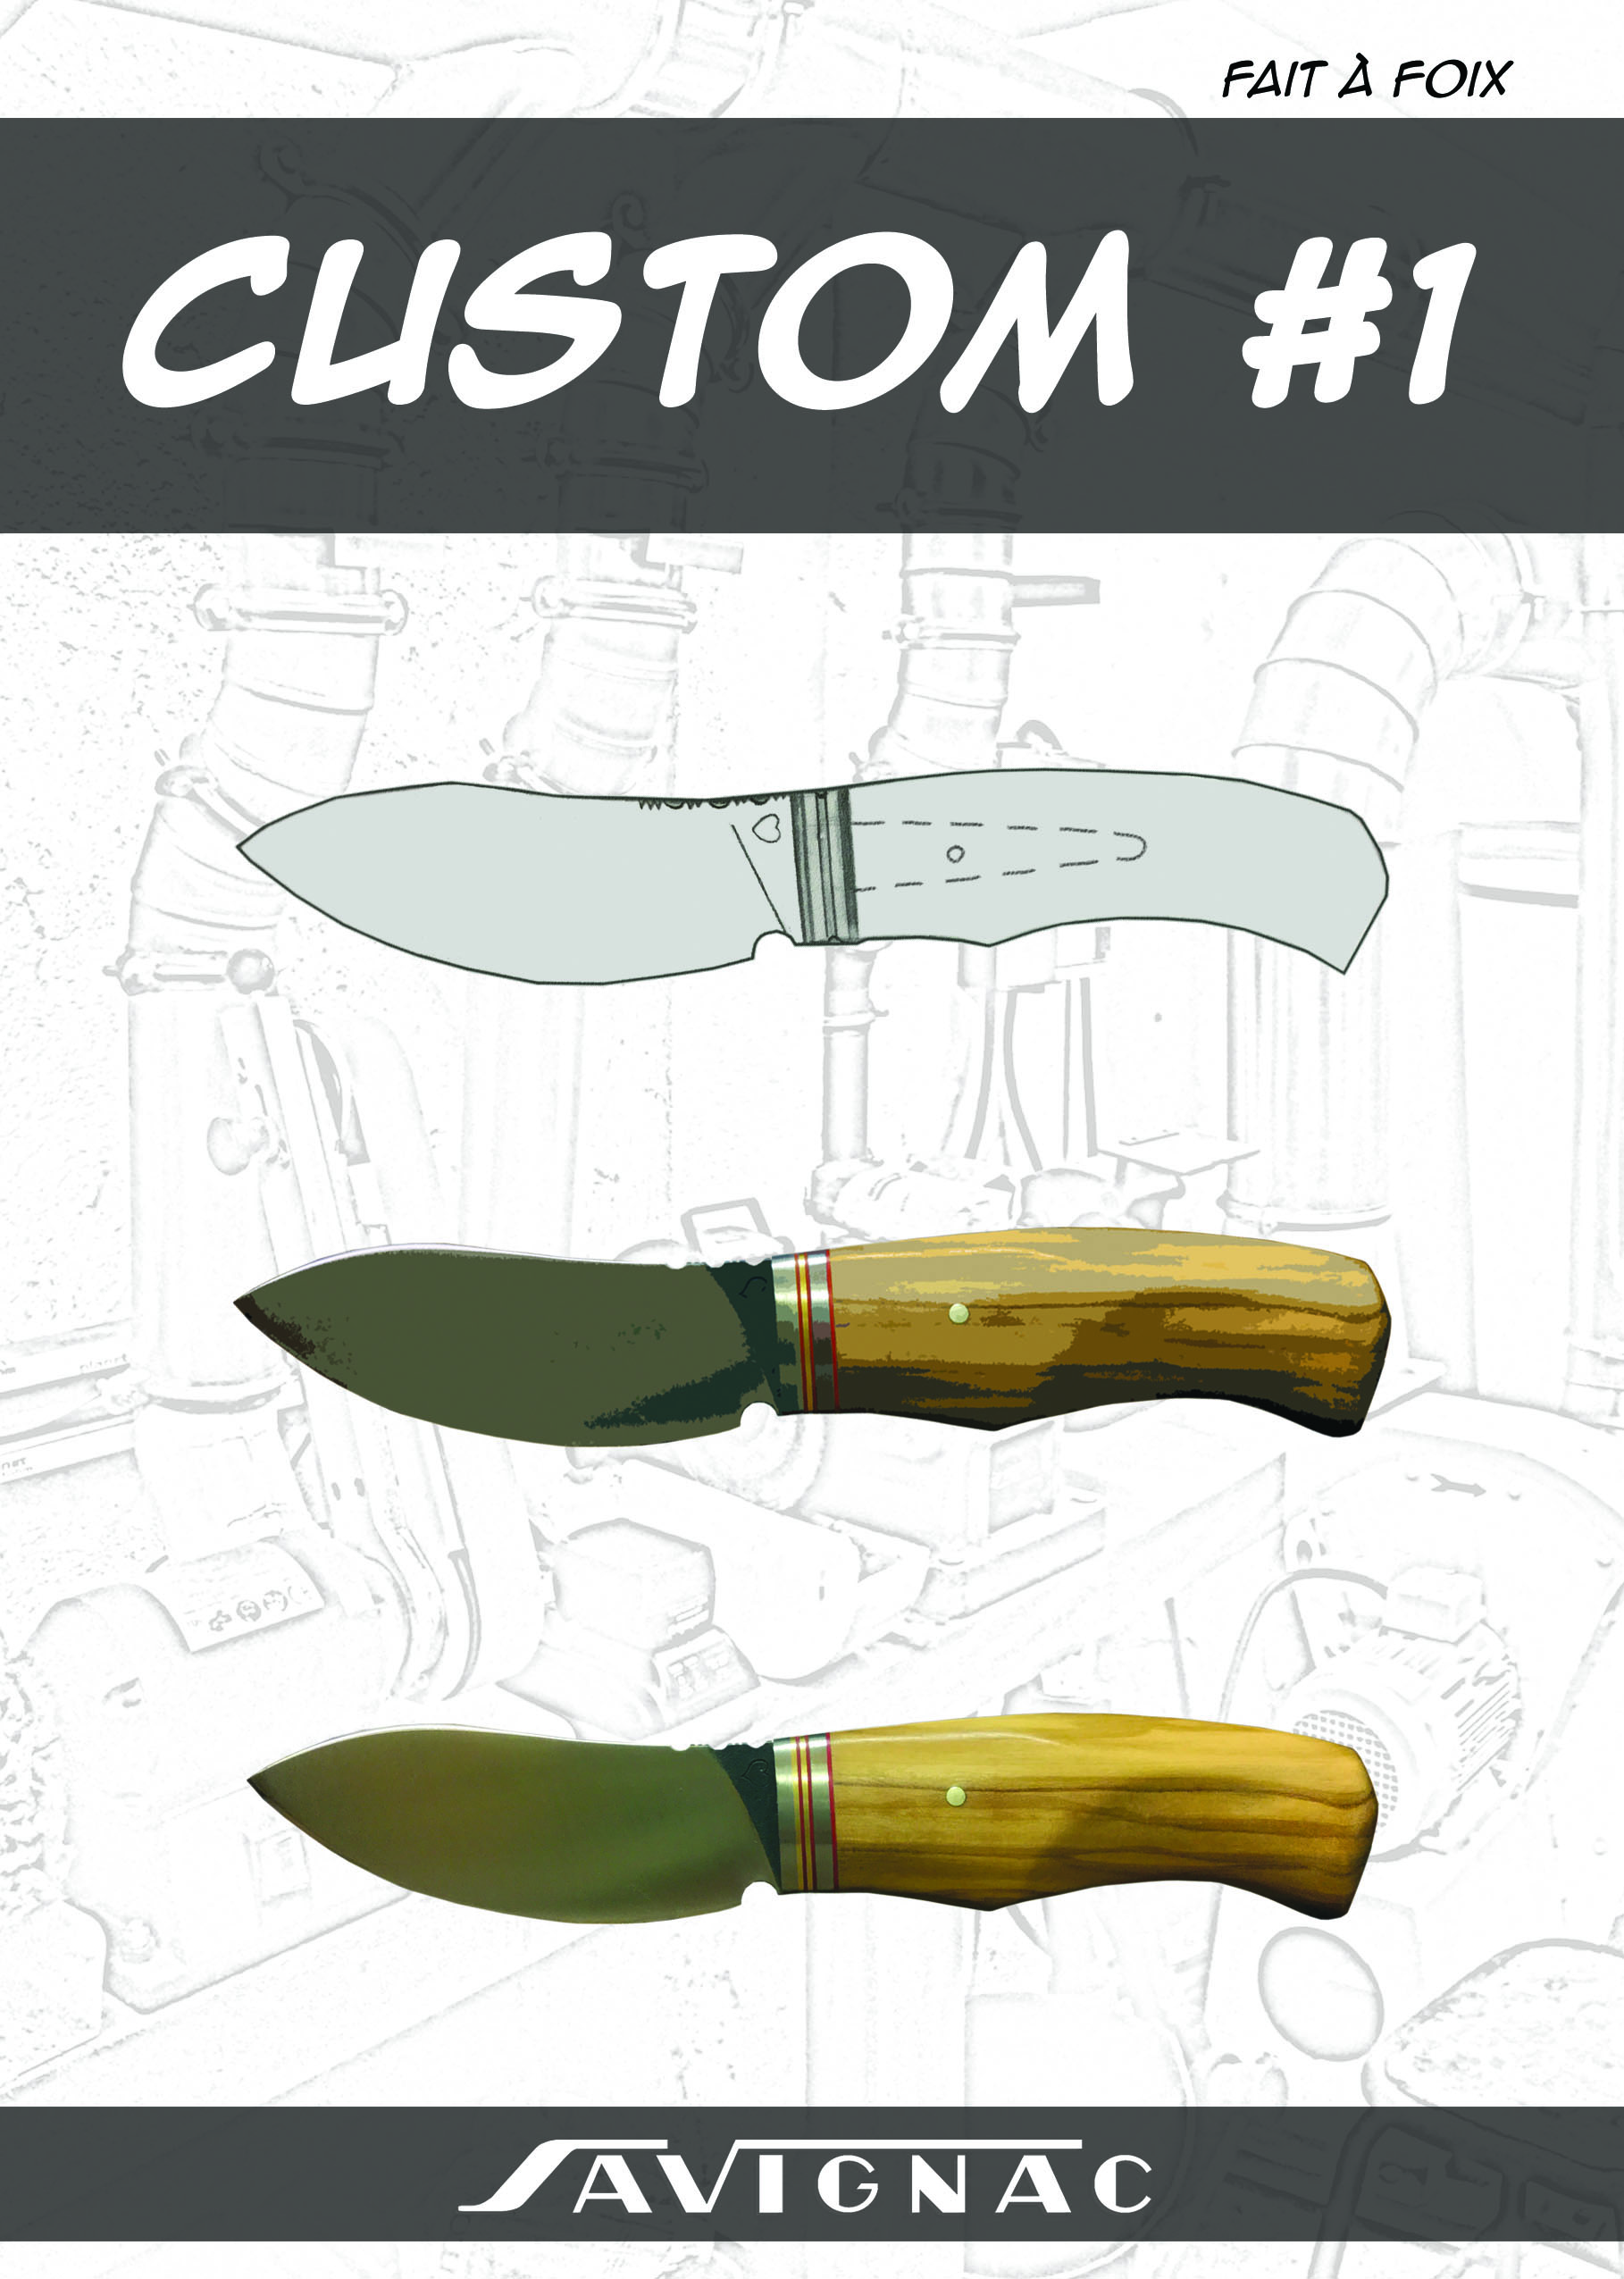 BD1-fabrication-couteau.jpg